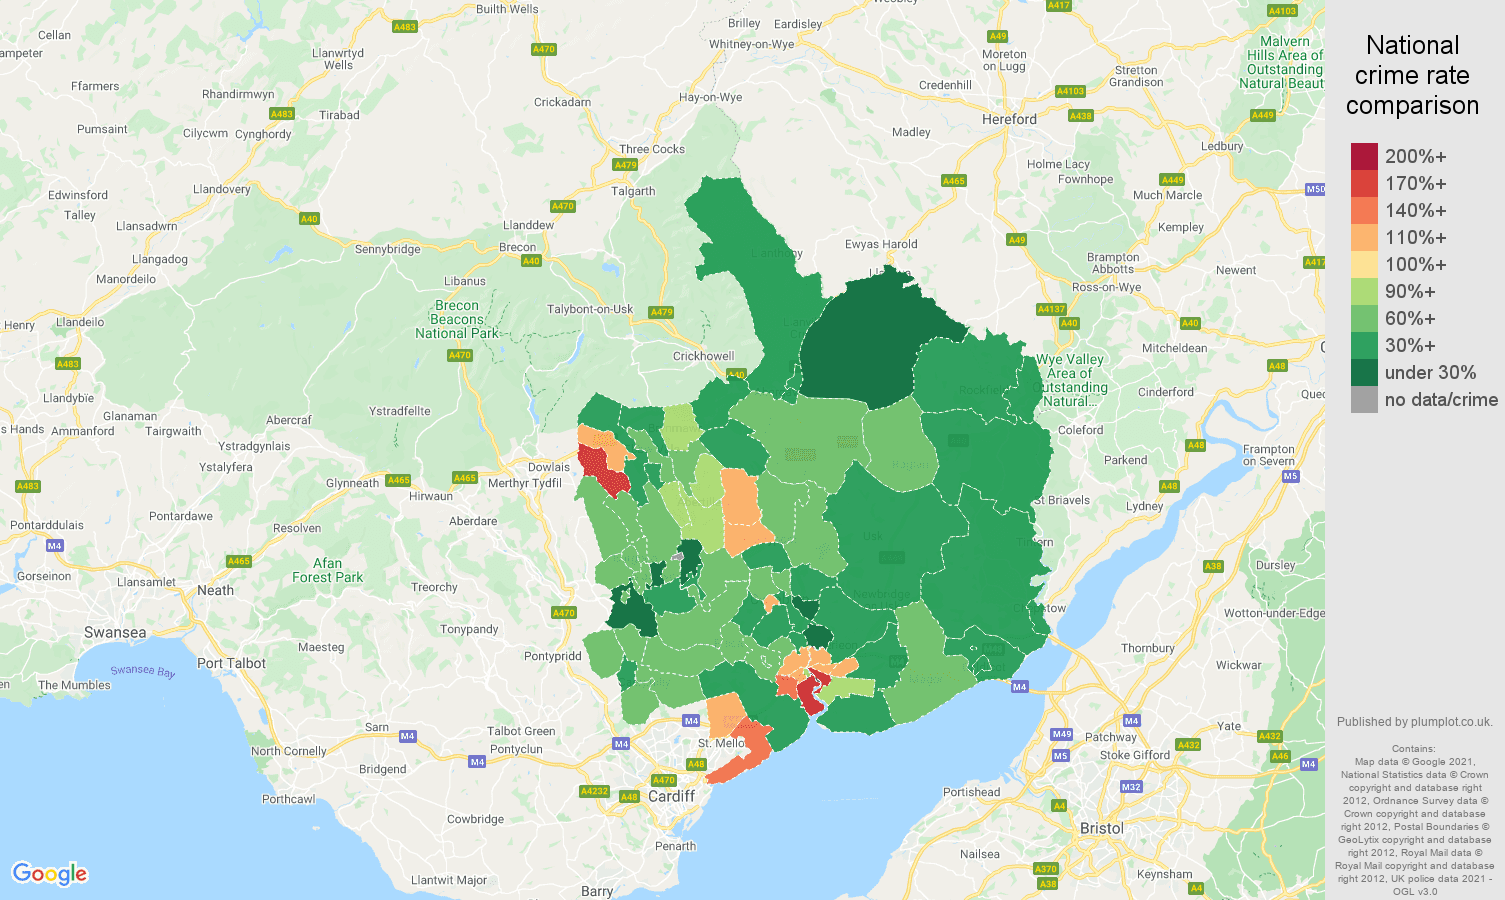 Gwent vehicle crime rate comparison map